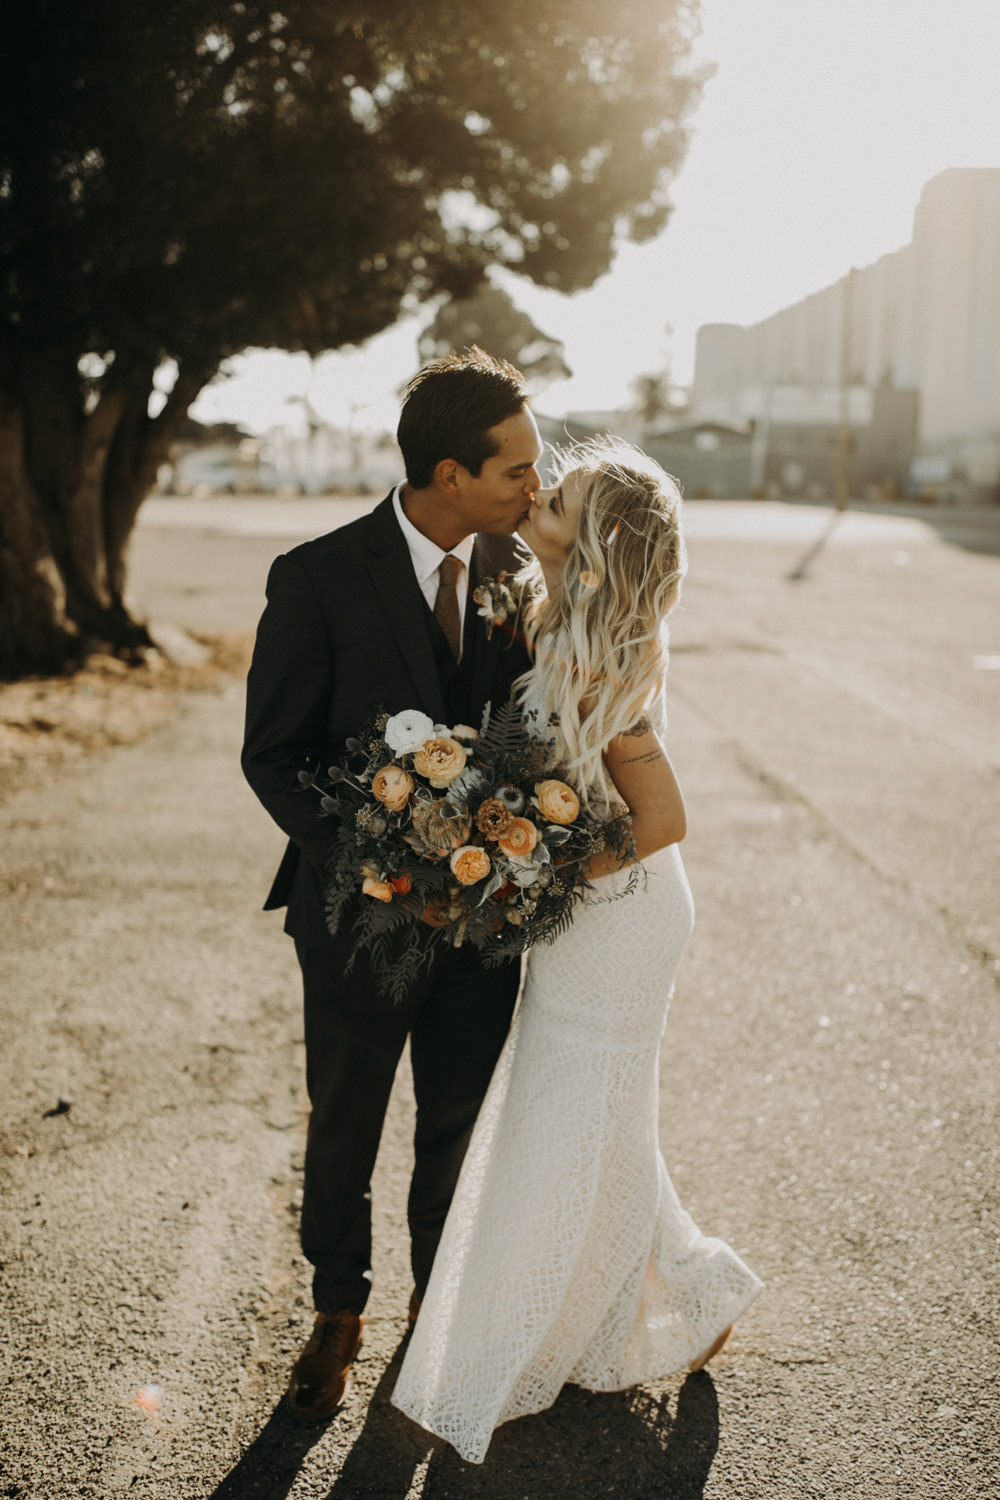 couple-wedding-san-francisco-treasure-island_0112.jpg